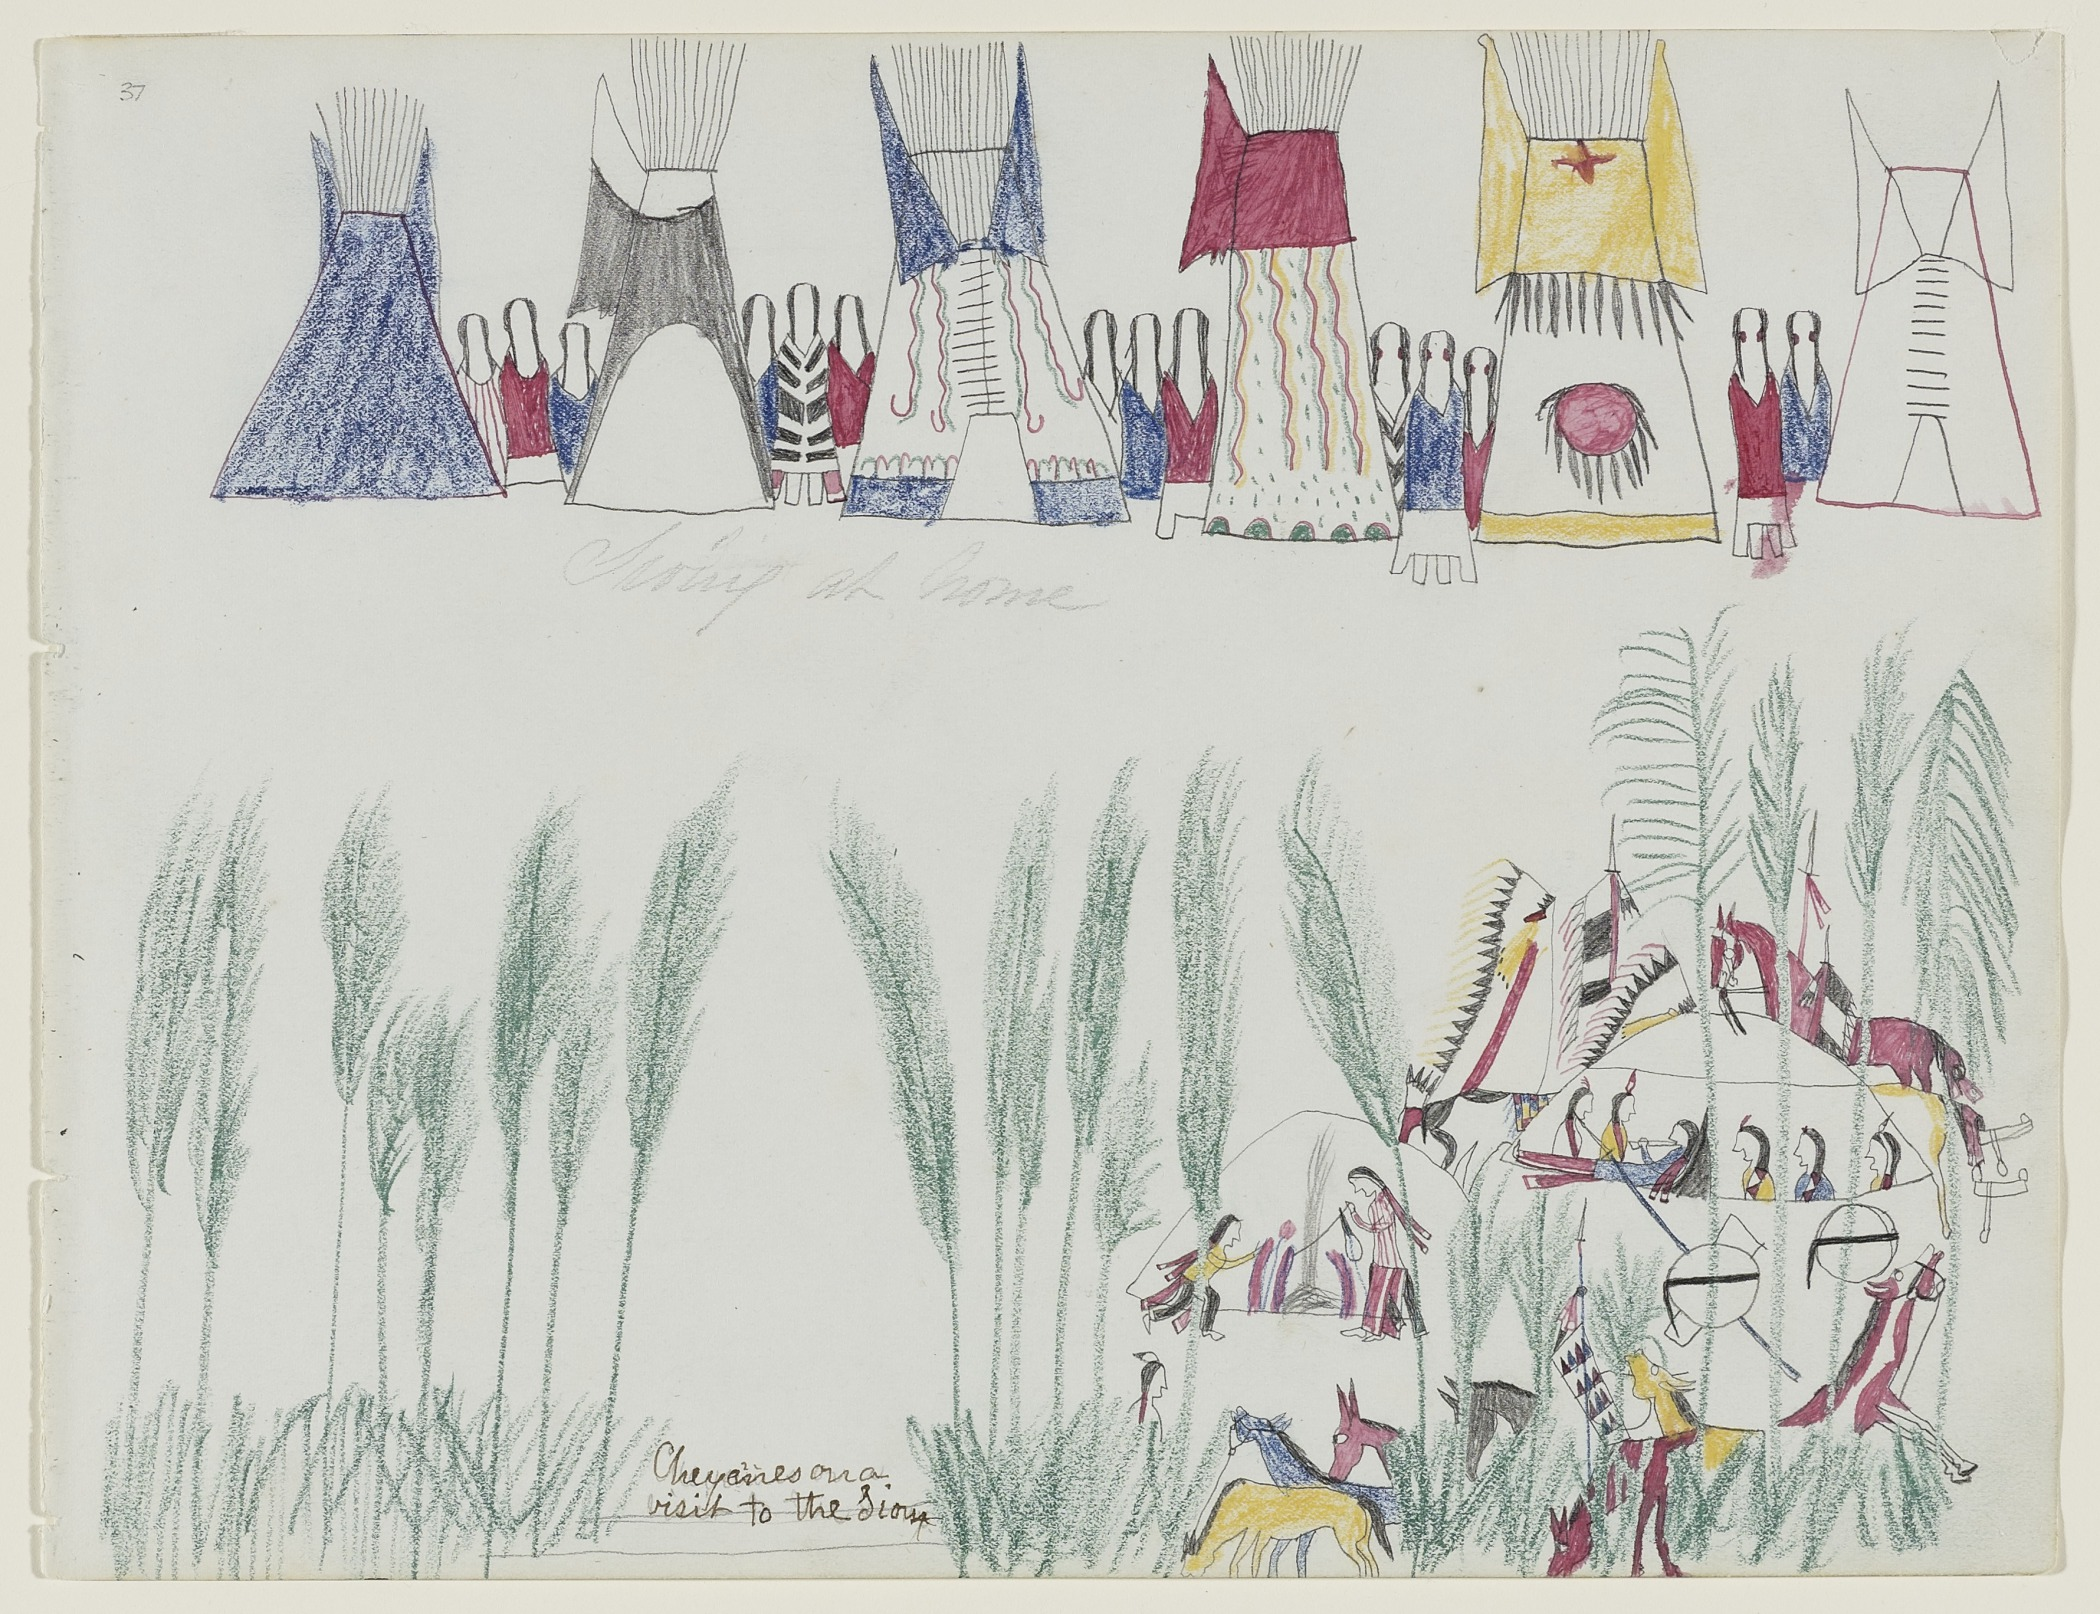 "Chief Killer (Noh-hu-nah-wih), Southern Tsistsistas, 1849–1922,  Untitled (""Cheyennes on a visit to the Sioux"") , page 37 from a Chief Killer sketchbook, about mid-1875–mid-1878. Graphite, colored pencil, and red ink on wove sketchbook paper, 8 5/8 × 11 1/4 in. Hood Museum of Art, Dartmouth College: Mark Lansburgh Ledger Drawing Collection; Partial gift of Mark Lansburgh, Class of 1949; and partial purchase through the Mrs. Harvey P. Hood W'18 Fund, and the Offices of the President and Provost of Dartmouth College; 2007.65.22."